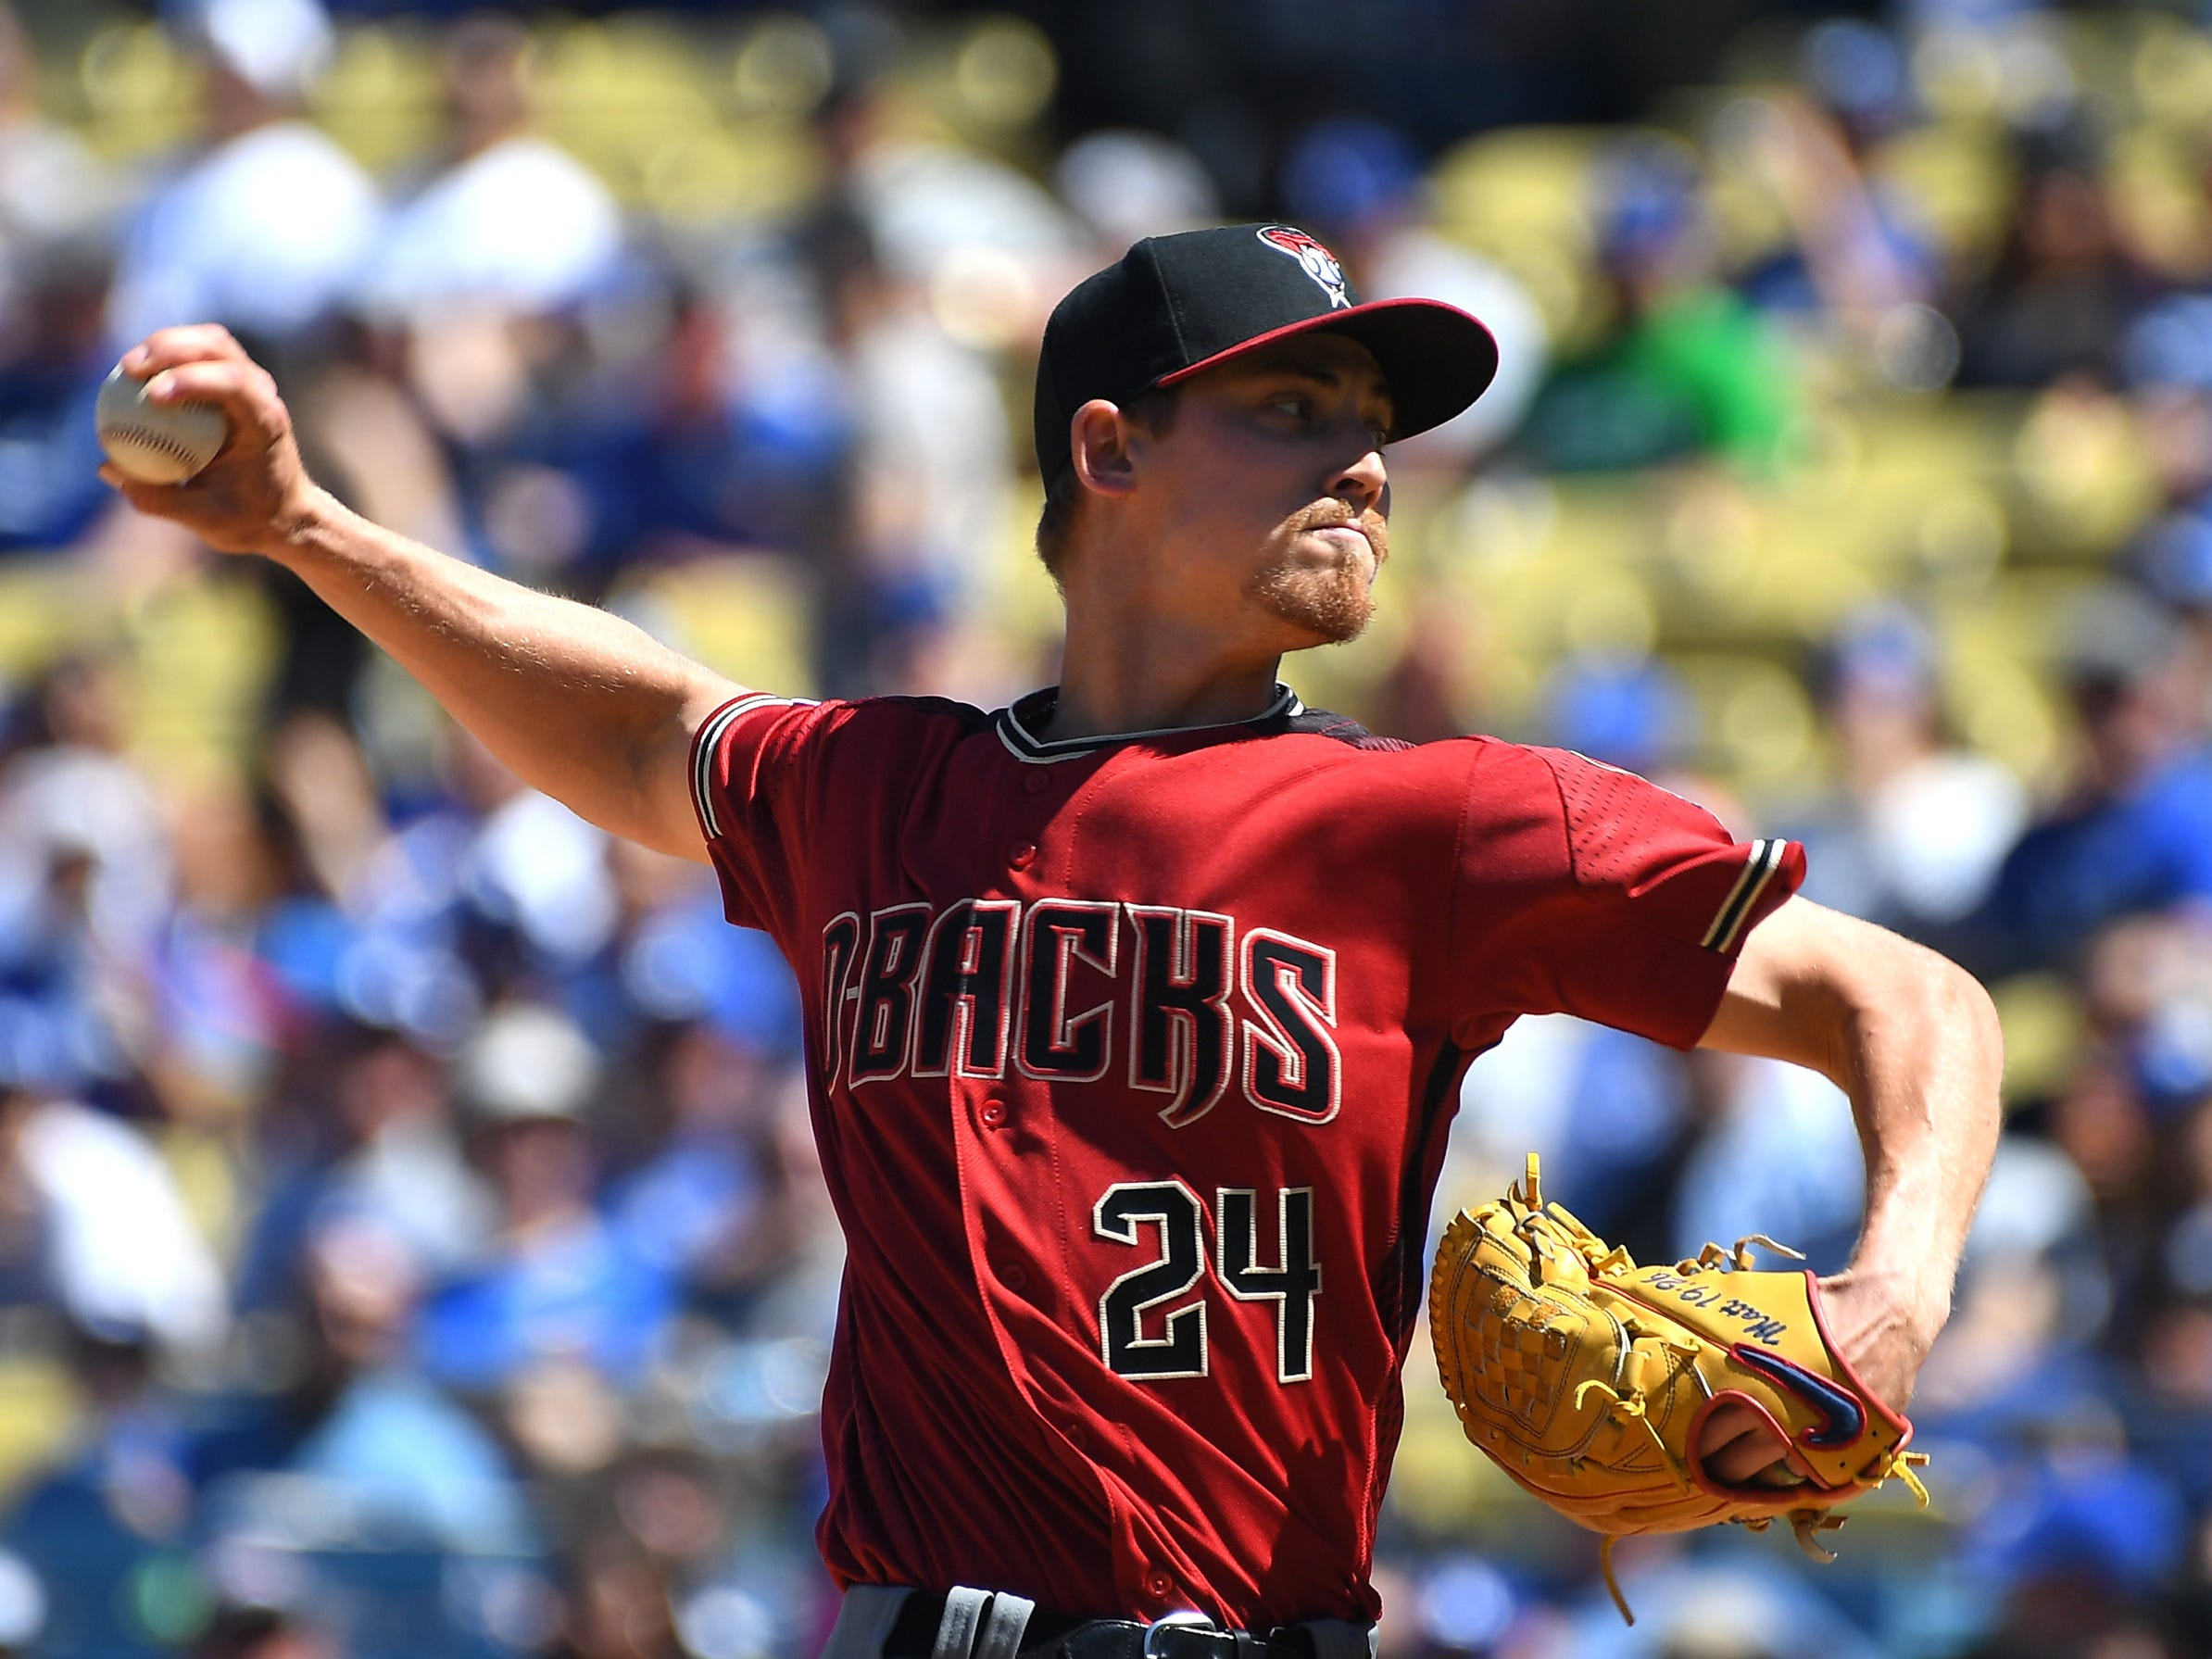 Mar 31, 2019; Los Angeles, CA, USA; Arizona Diamondbacks starting pitcher Luke Weaver (24) pitches in the second inning against the Los Angeles Dodgers at Dodger Stadium.